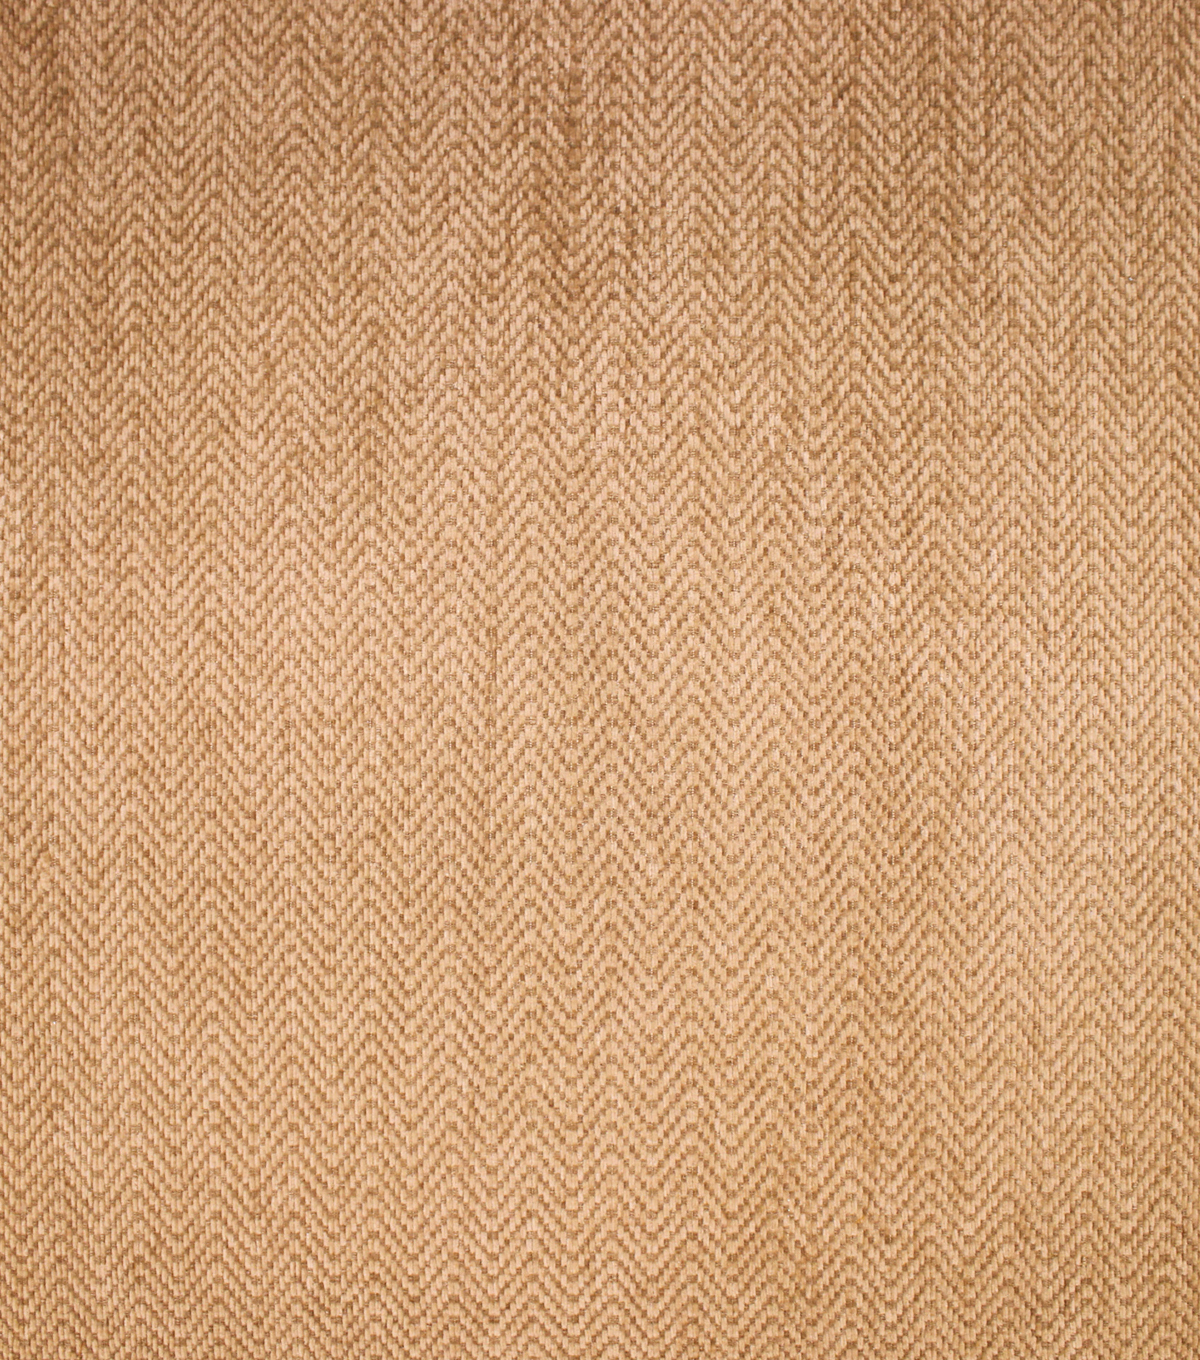 Home Decor 8\u0022x8\u0022 Fabric Swatch-Upholstery Fabric Barrow M8491-5326 Camel